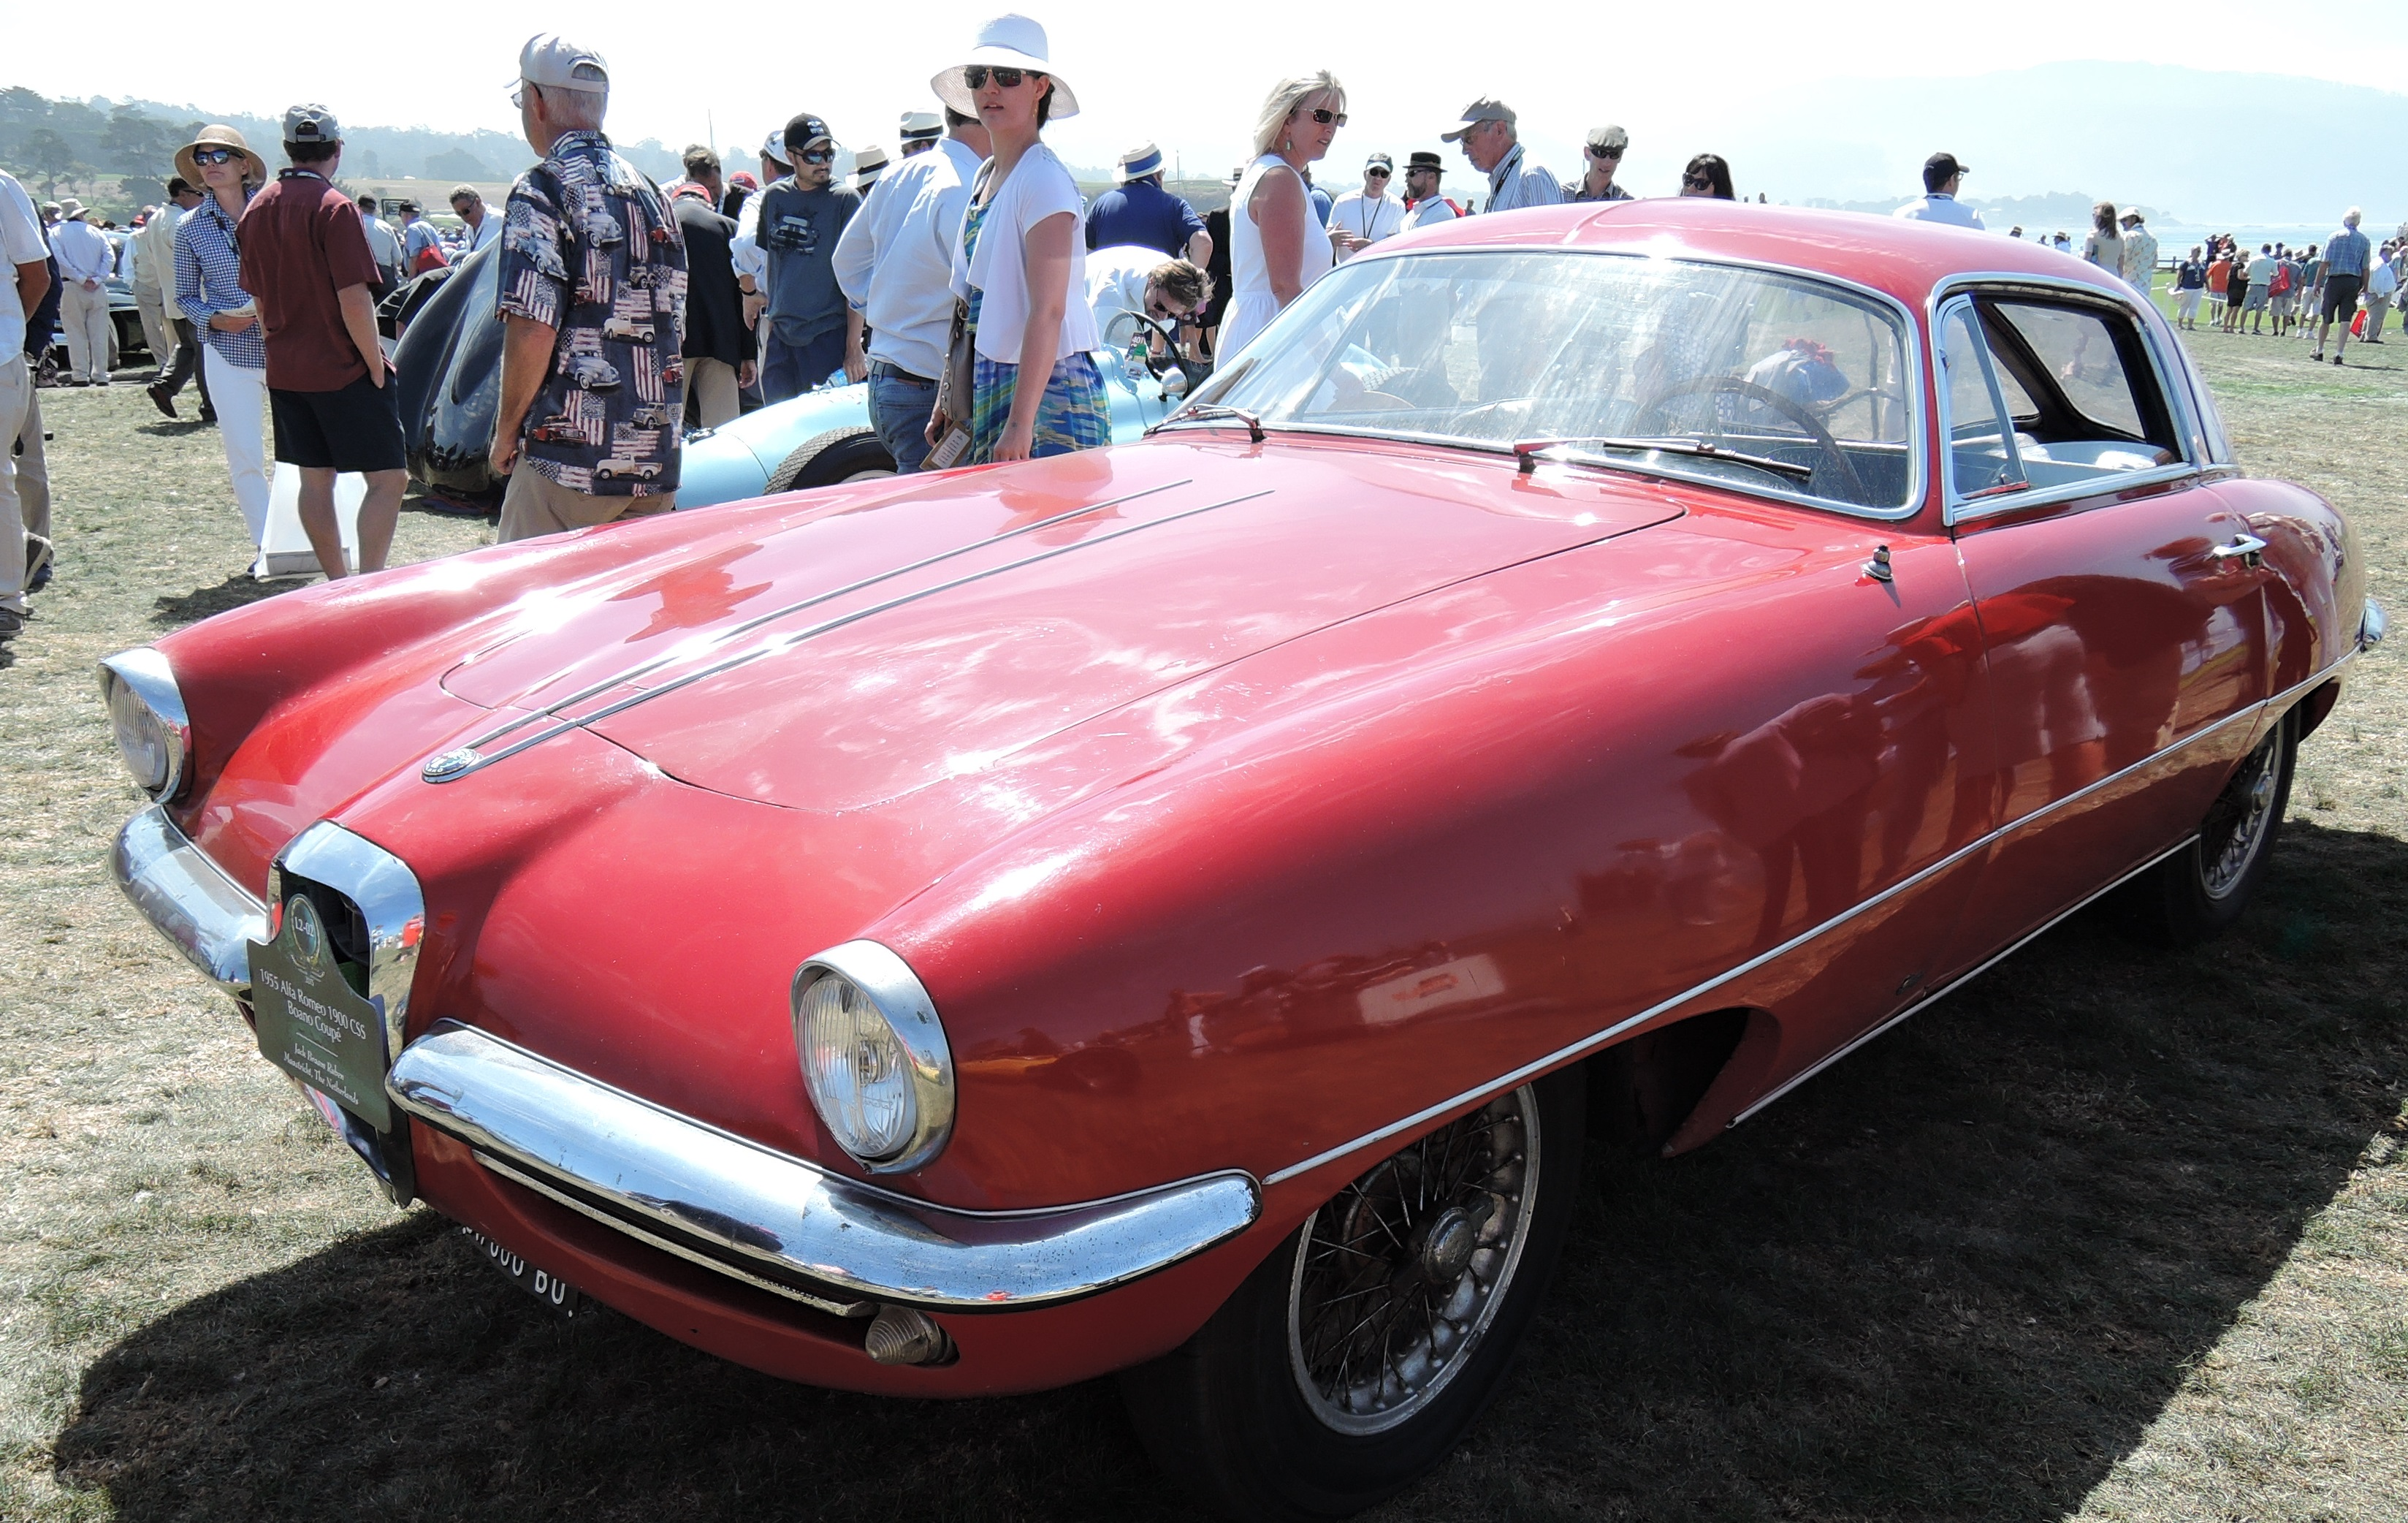 red 1955 Alfa Romeo 1900 CSS Boano Coupe - concours d'elegance